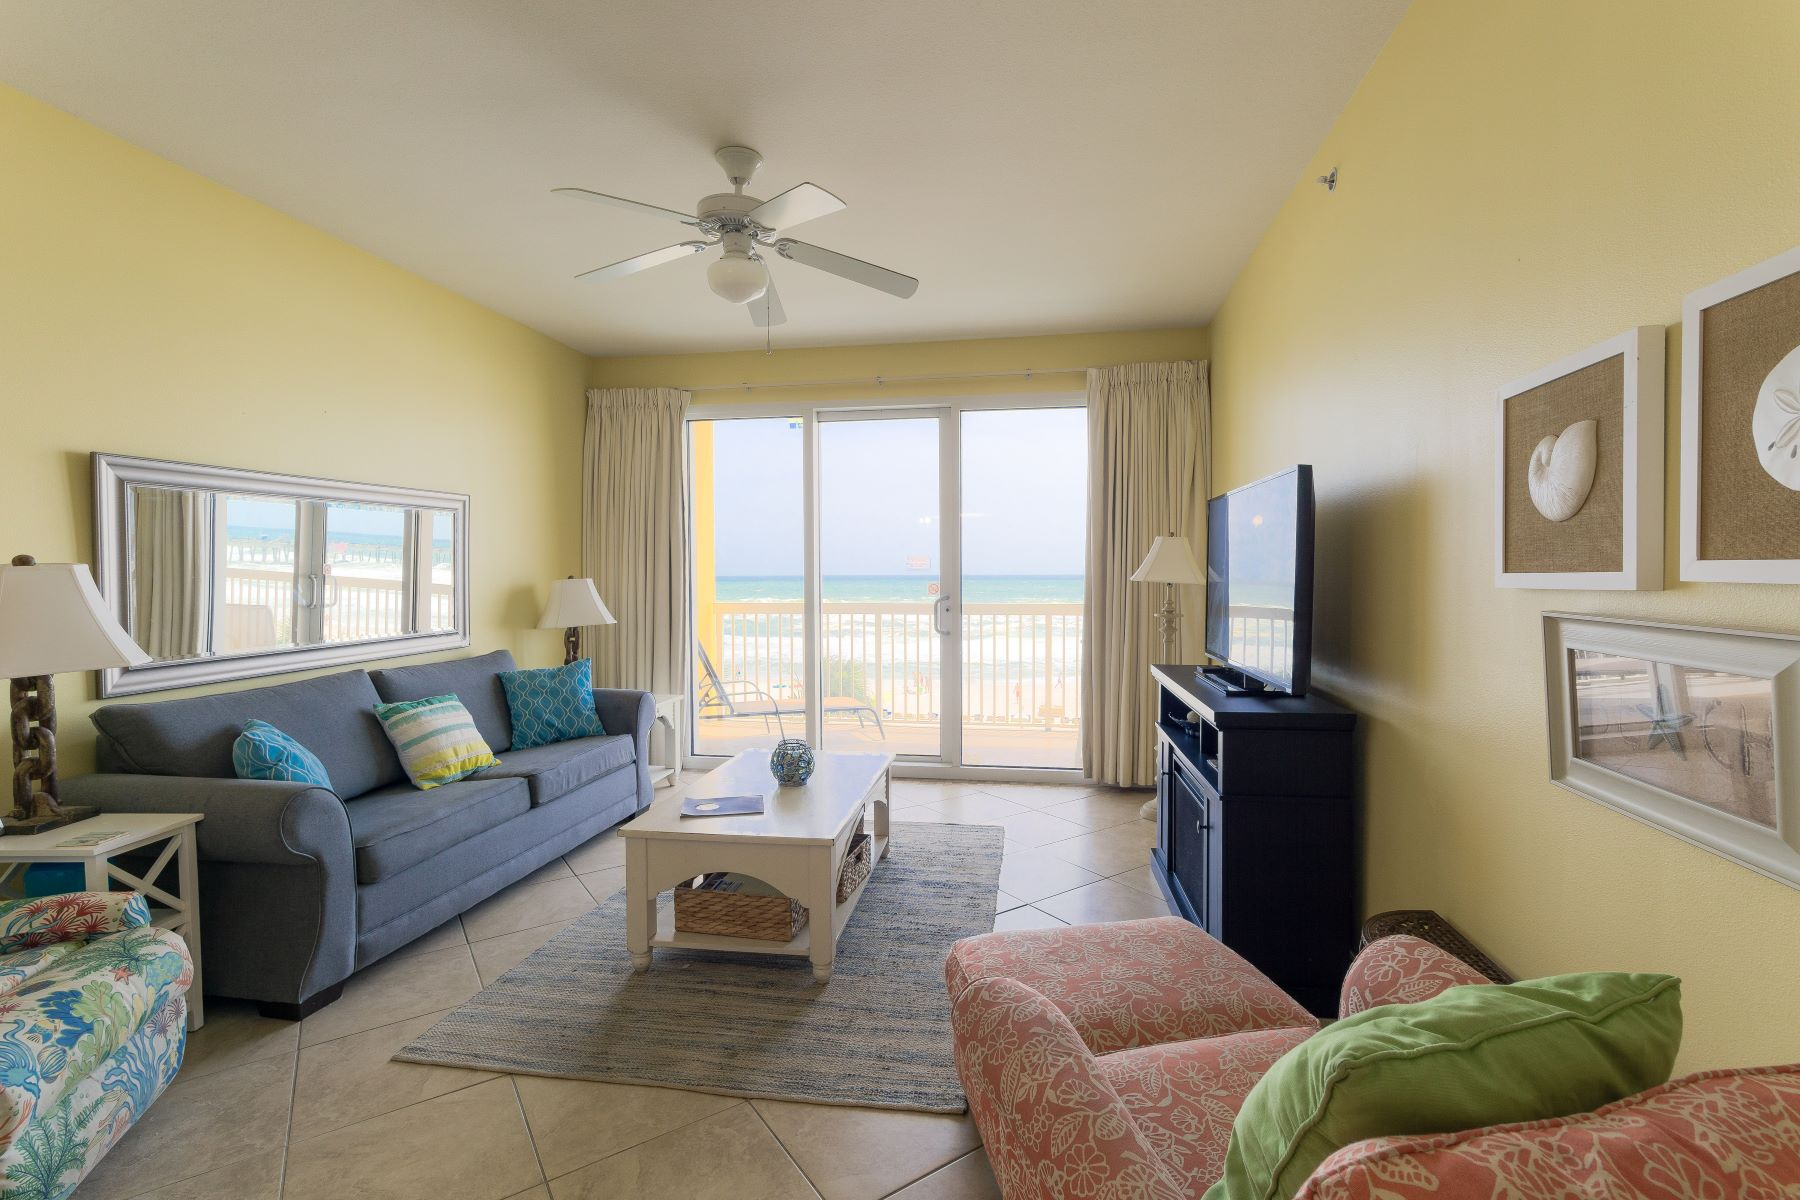 Condominiums for Sale at Low Floor Condo in Prime Location with Investment Opportunity 15817 Front Beach Road 2-308, Panama City Beach, Florida 32413 United States